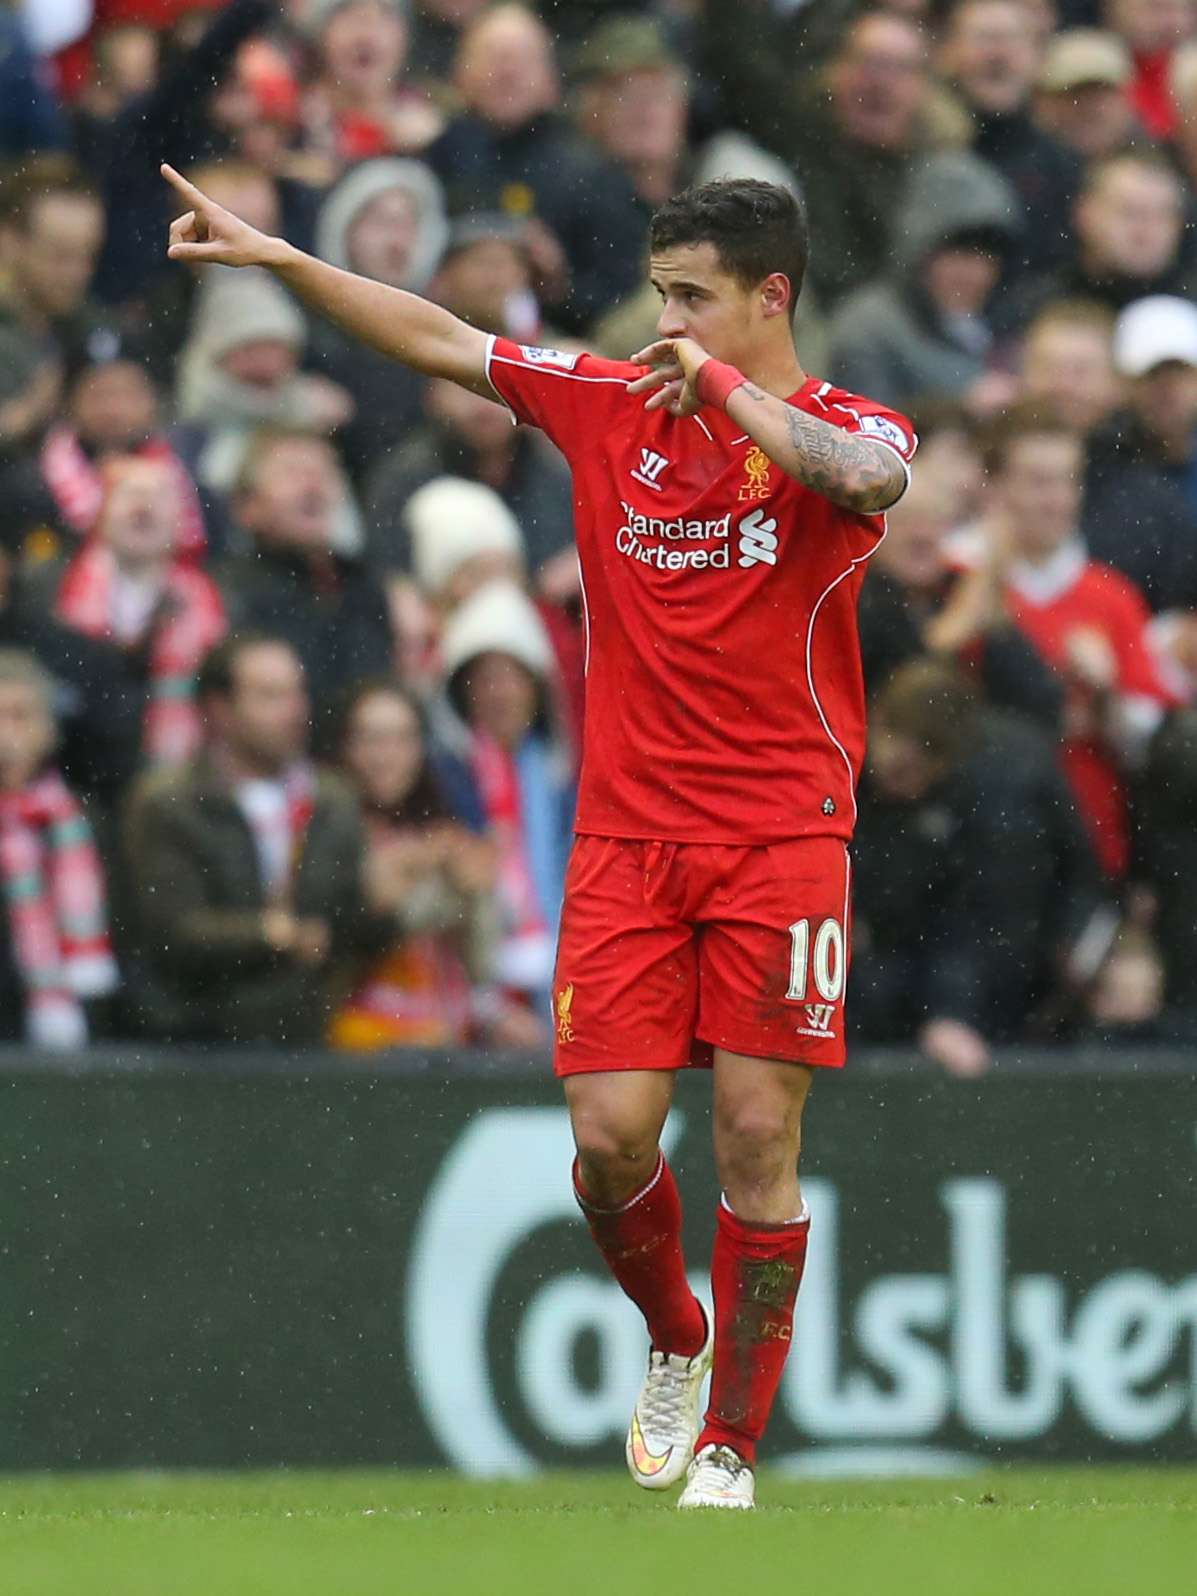 "Football - Liverpool v Manchester City - Barclays Premier League - Anfield - 1/3/15 Liverpool's Philippe Coutinho celebrates after scoring the second goal for his side Action Images via Reuters / Carl Recine Livepic EDITORIAL USE ONLY. No use with unauthorized audio, video, data, fixture lists, club/league logos or ""live"" services. Online in-match use limited to 45 images, no video emulation. No use in betting, games or single club/league/player publications. Please contact your account representative for further details. Foto: Carl Recine/REUTERS"